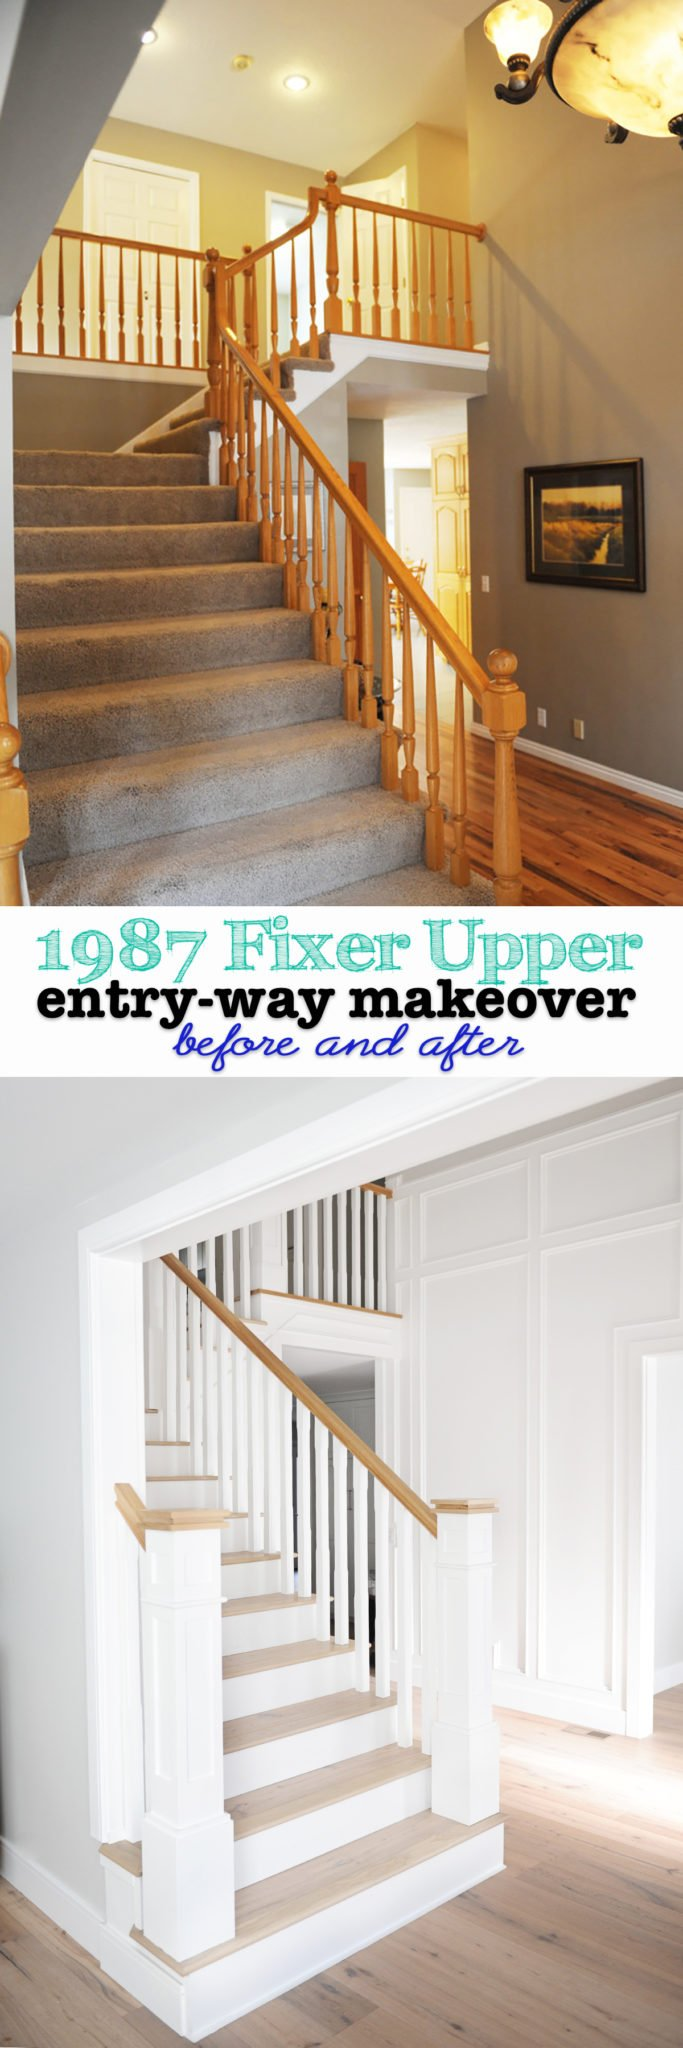 entry way makeover remodel 1987 house